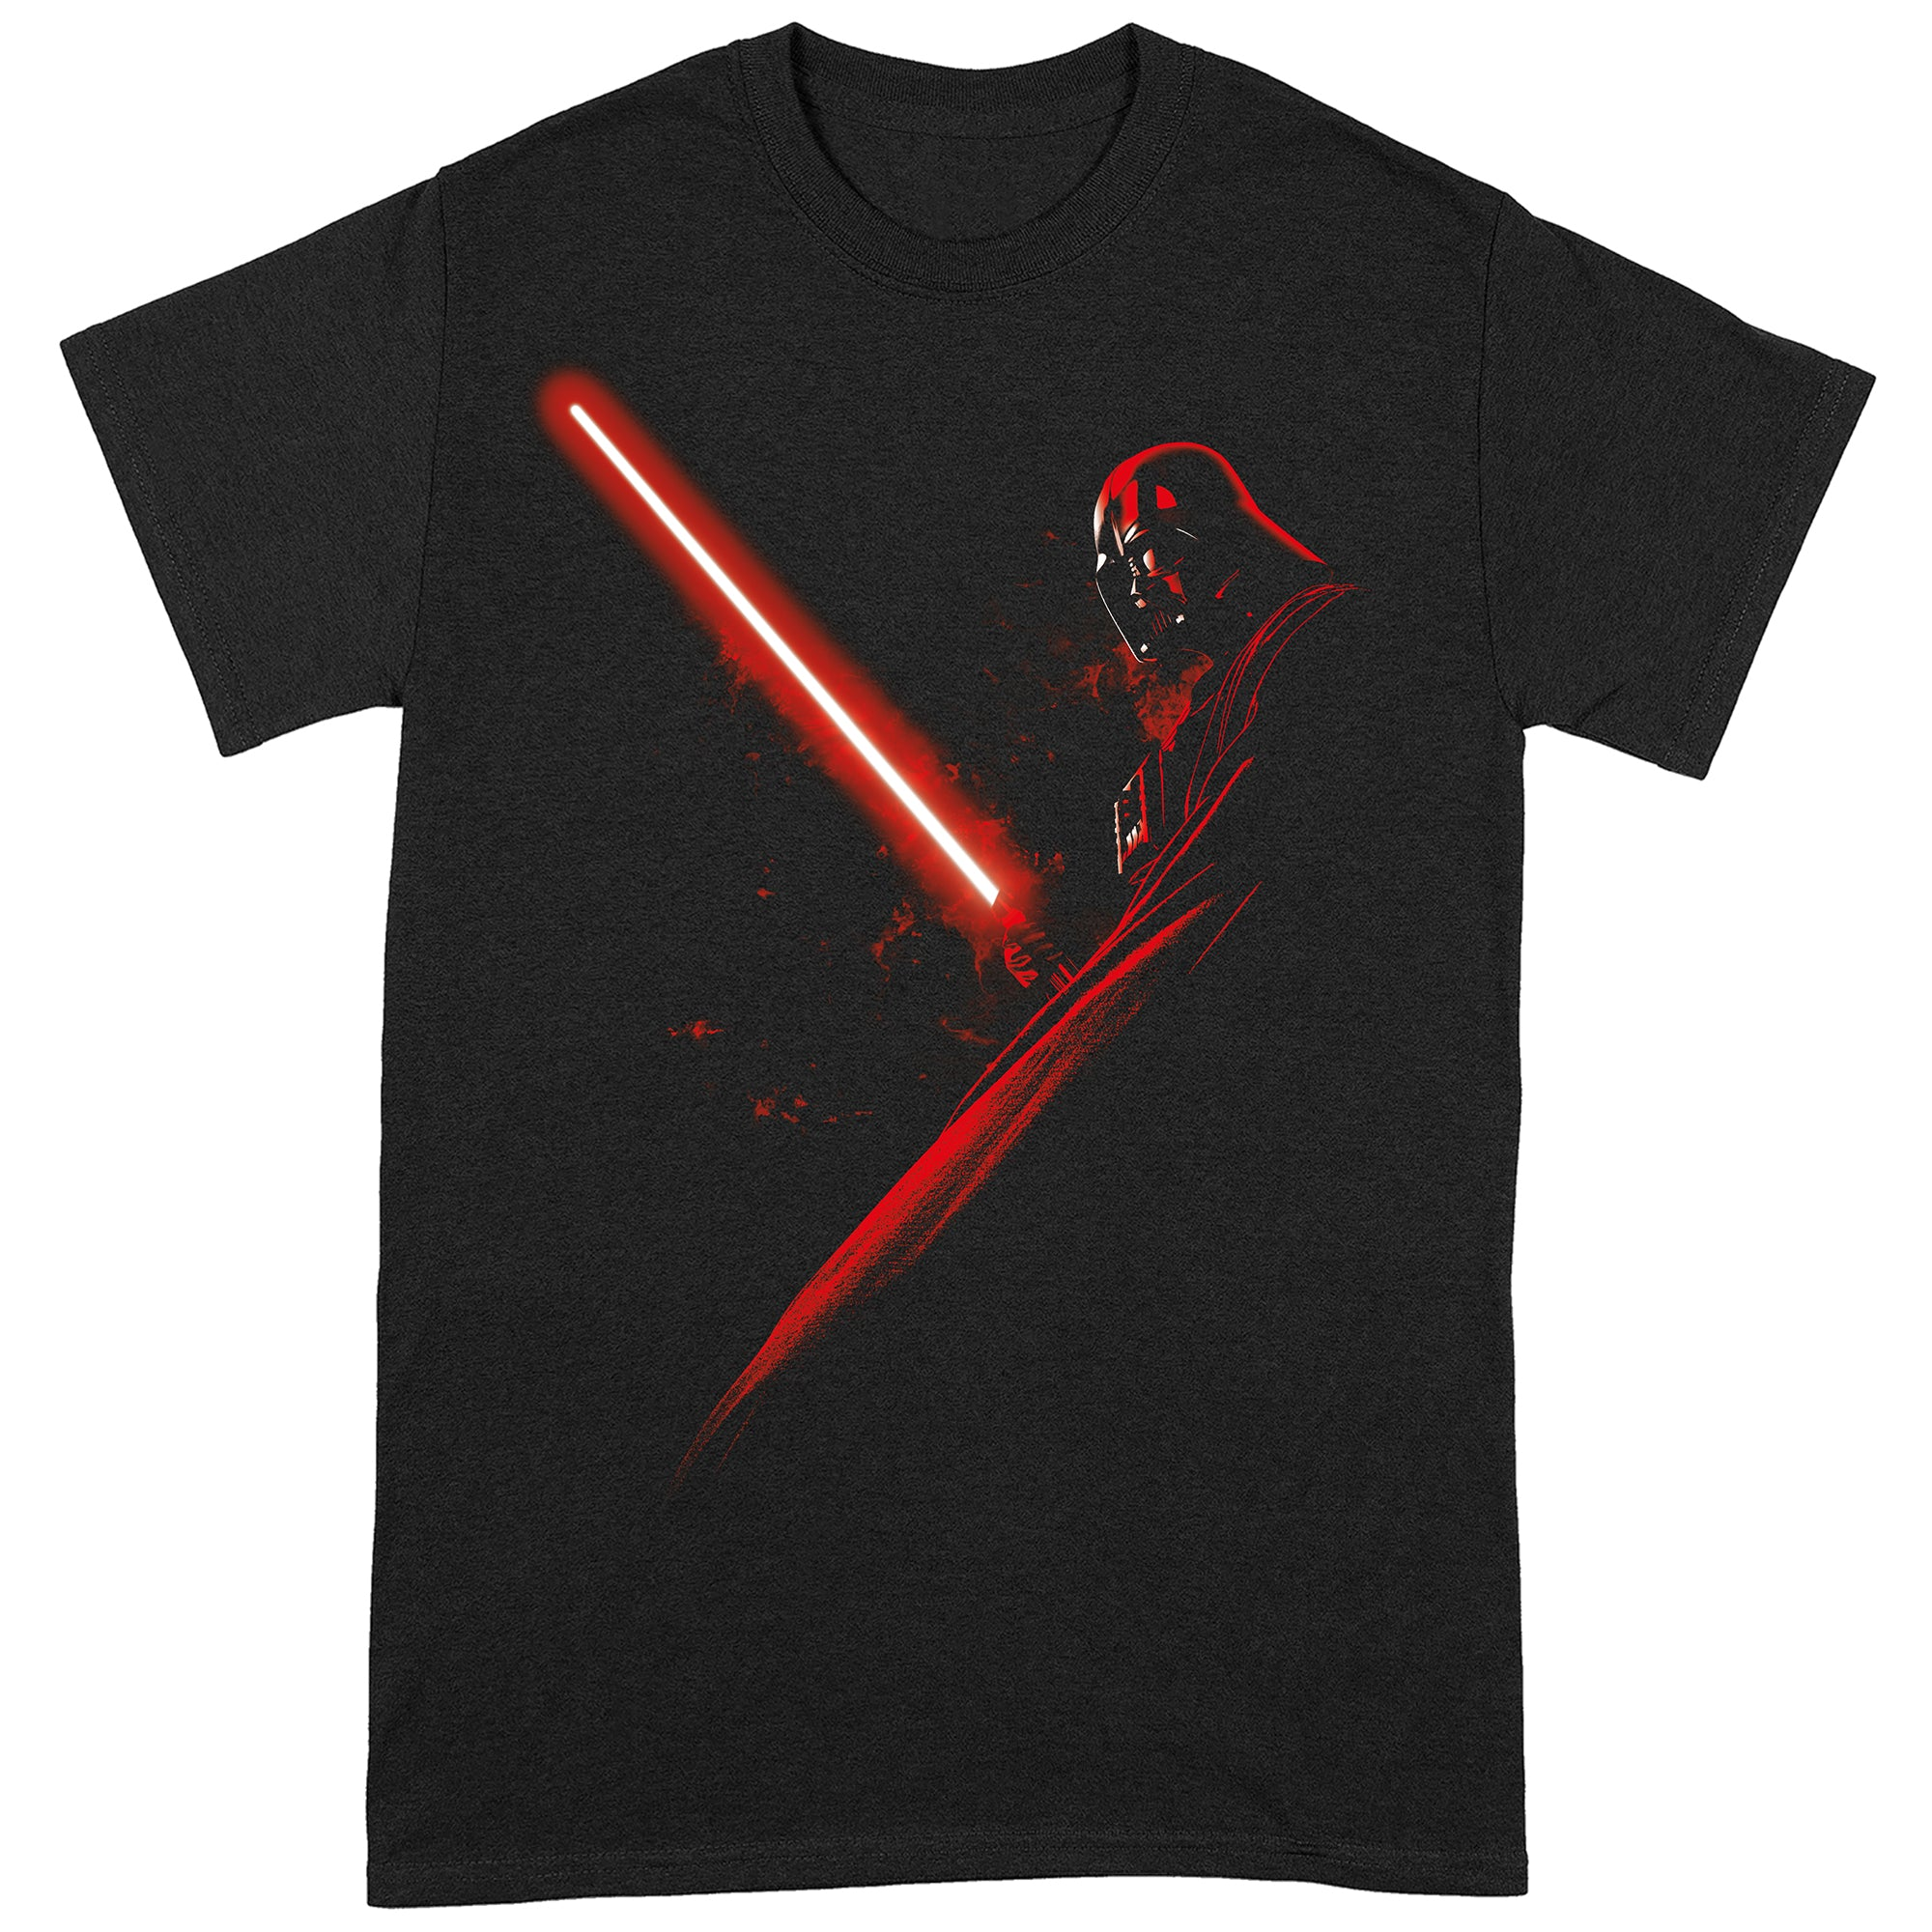 Star Wars Darth Vader Lightsaber T-Shirt